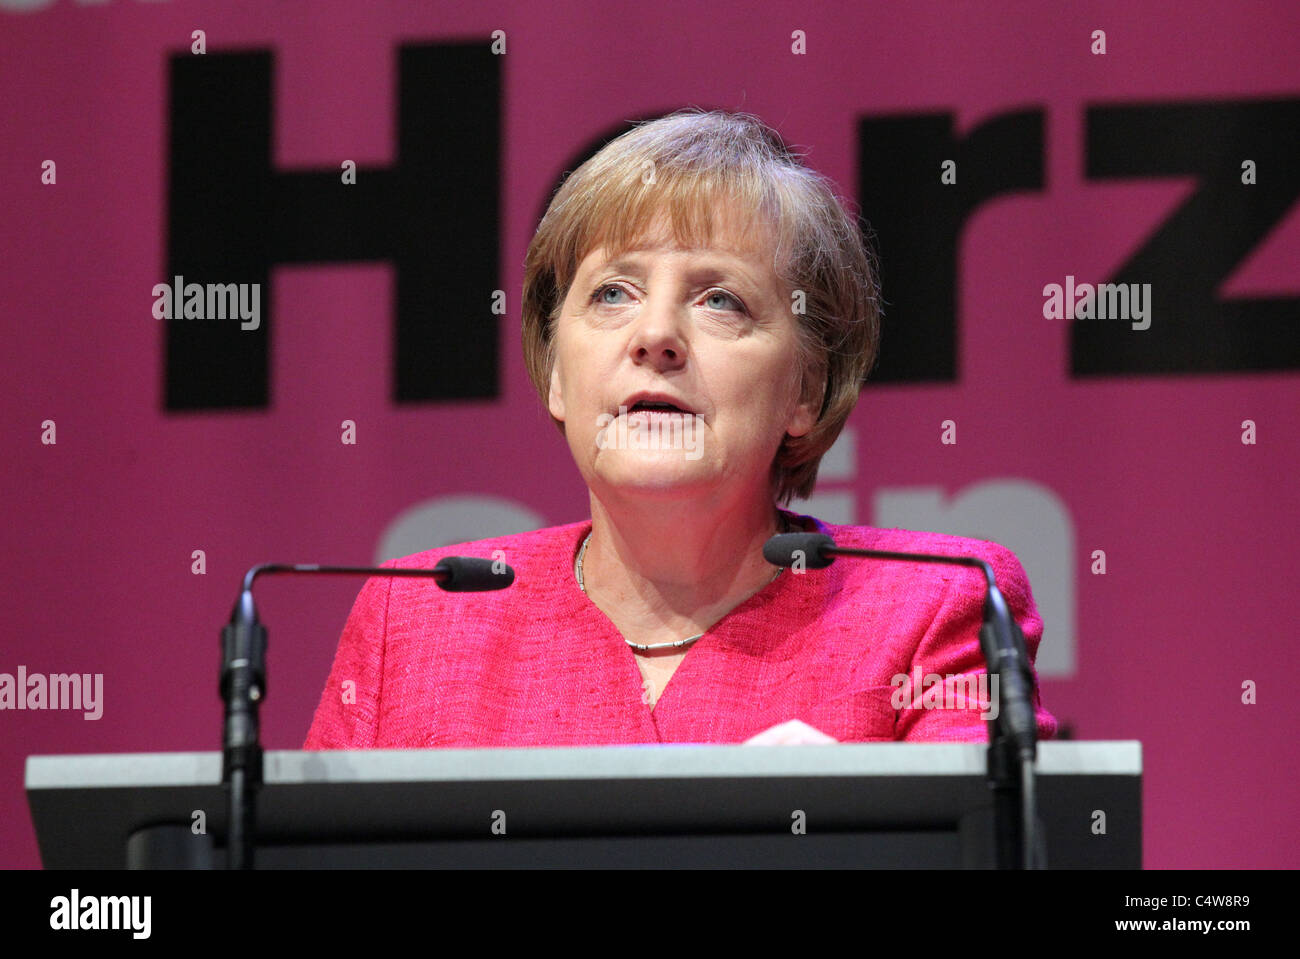 ANGELA MERKEL, Chancellor of Germany during a speech at the Evangelical Congress in Dresden, Germany 4.June 2011 - Stock Image